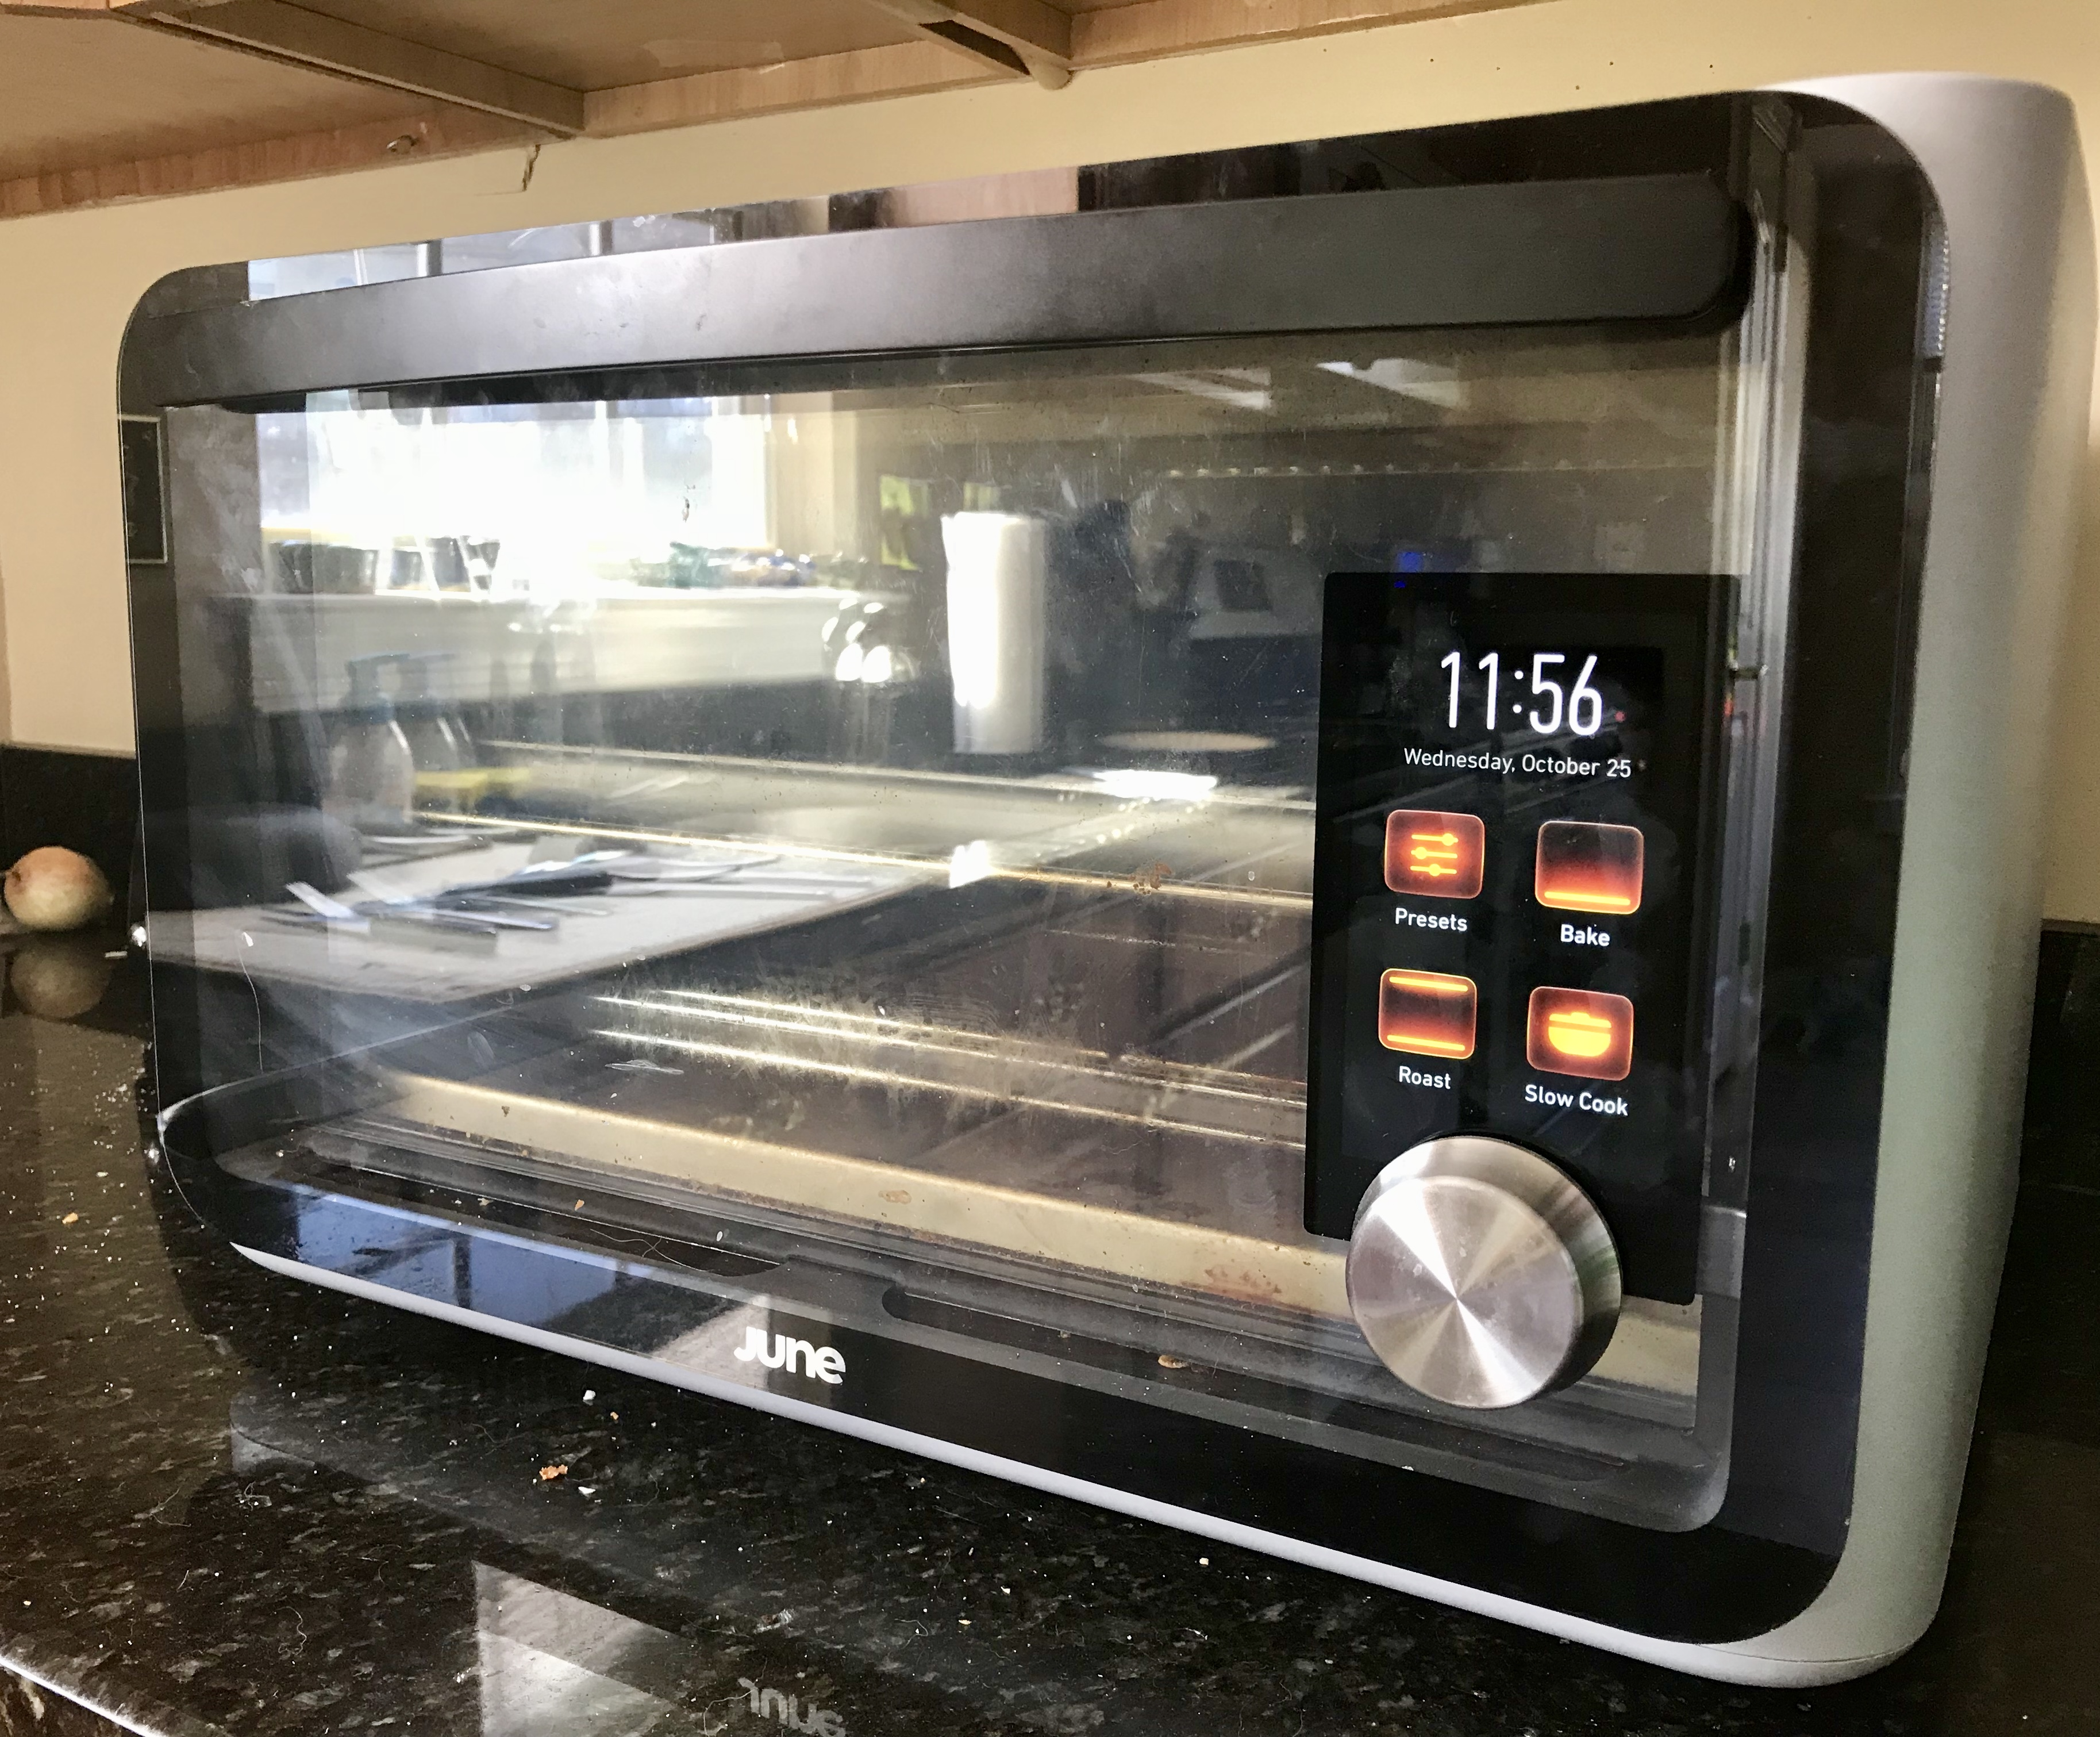 - June oven - Hi, my name is Kevin and I don't like smart home scenes – Stacey on IoT